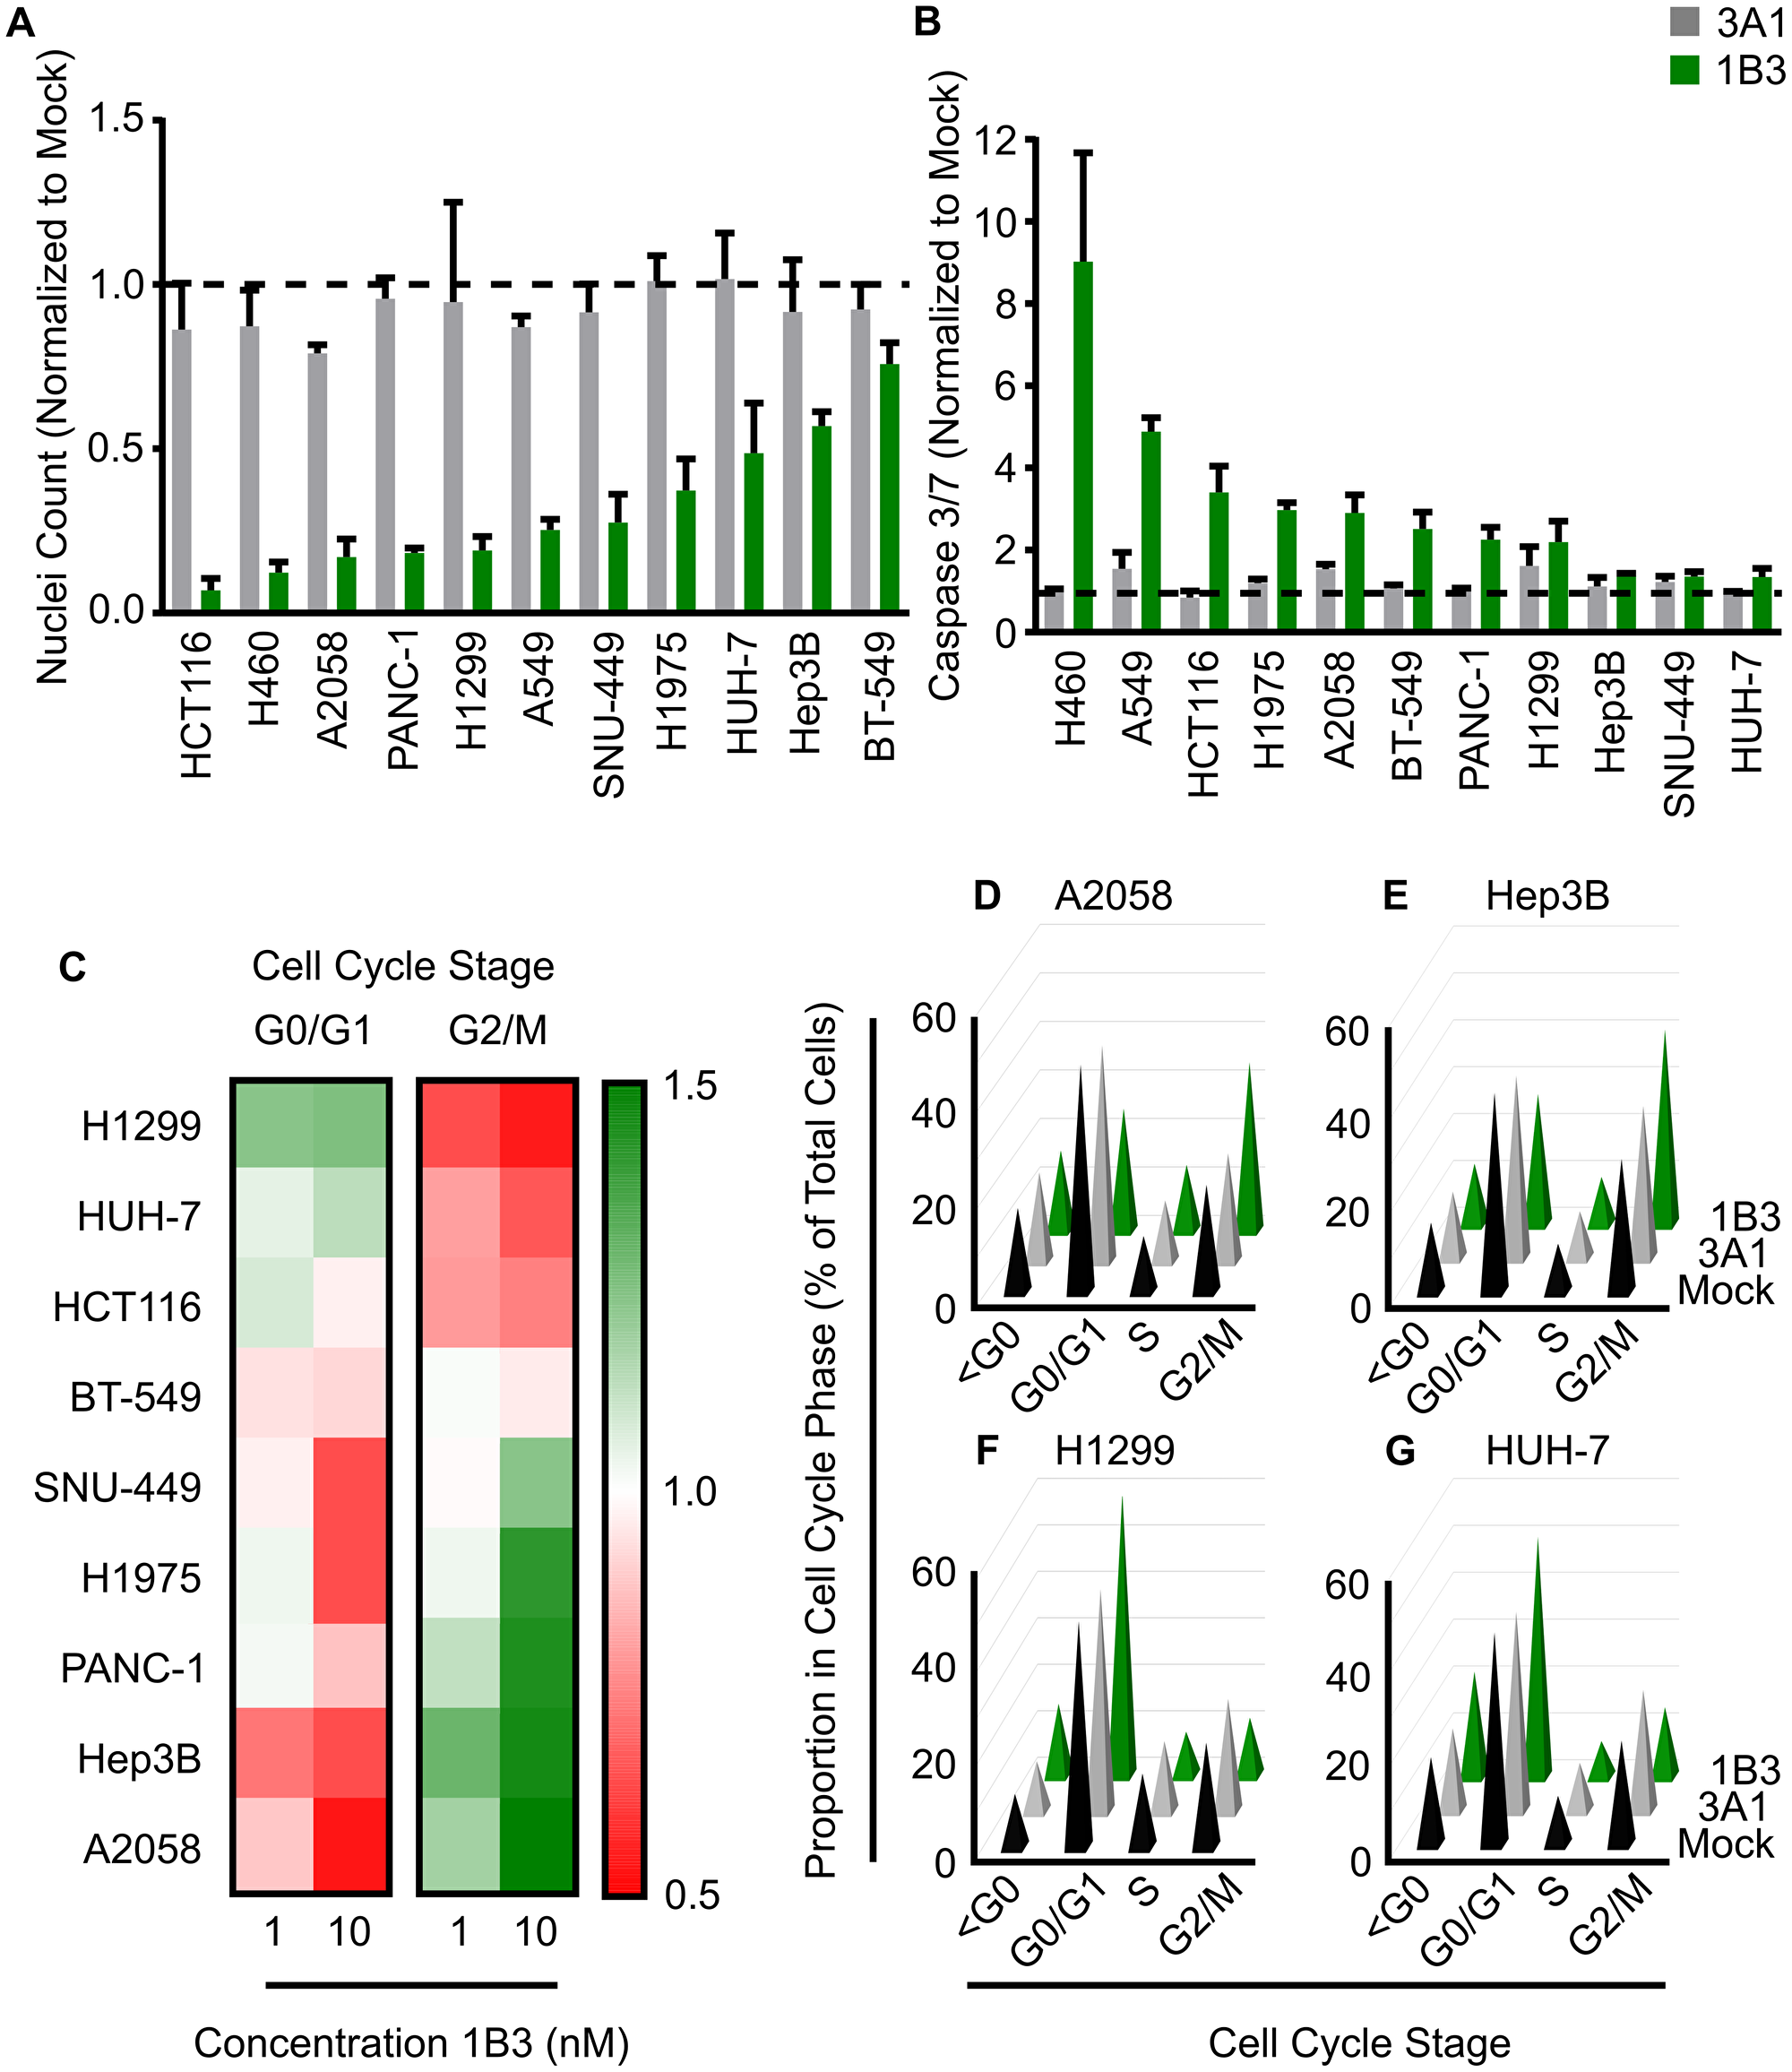 Effect of 1B3 on cell proliferation, apoptosis, and cell cycle in a panel of human cancer cell lines.